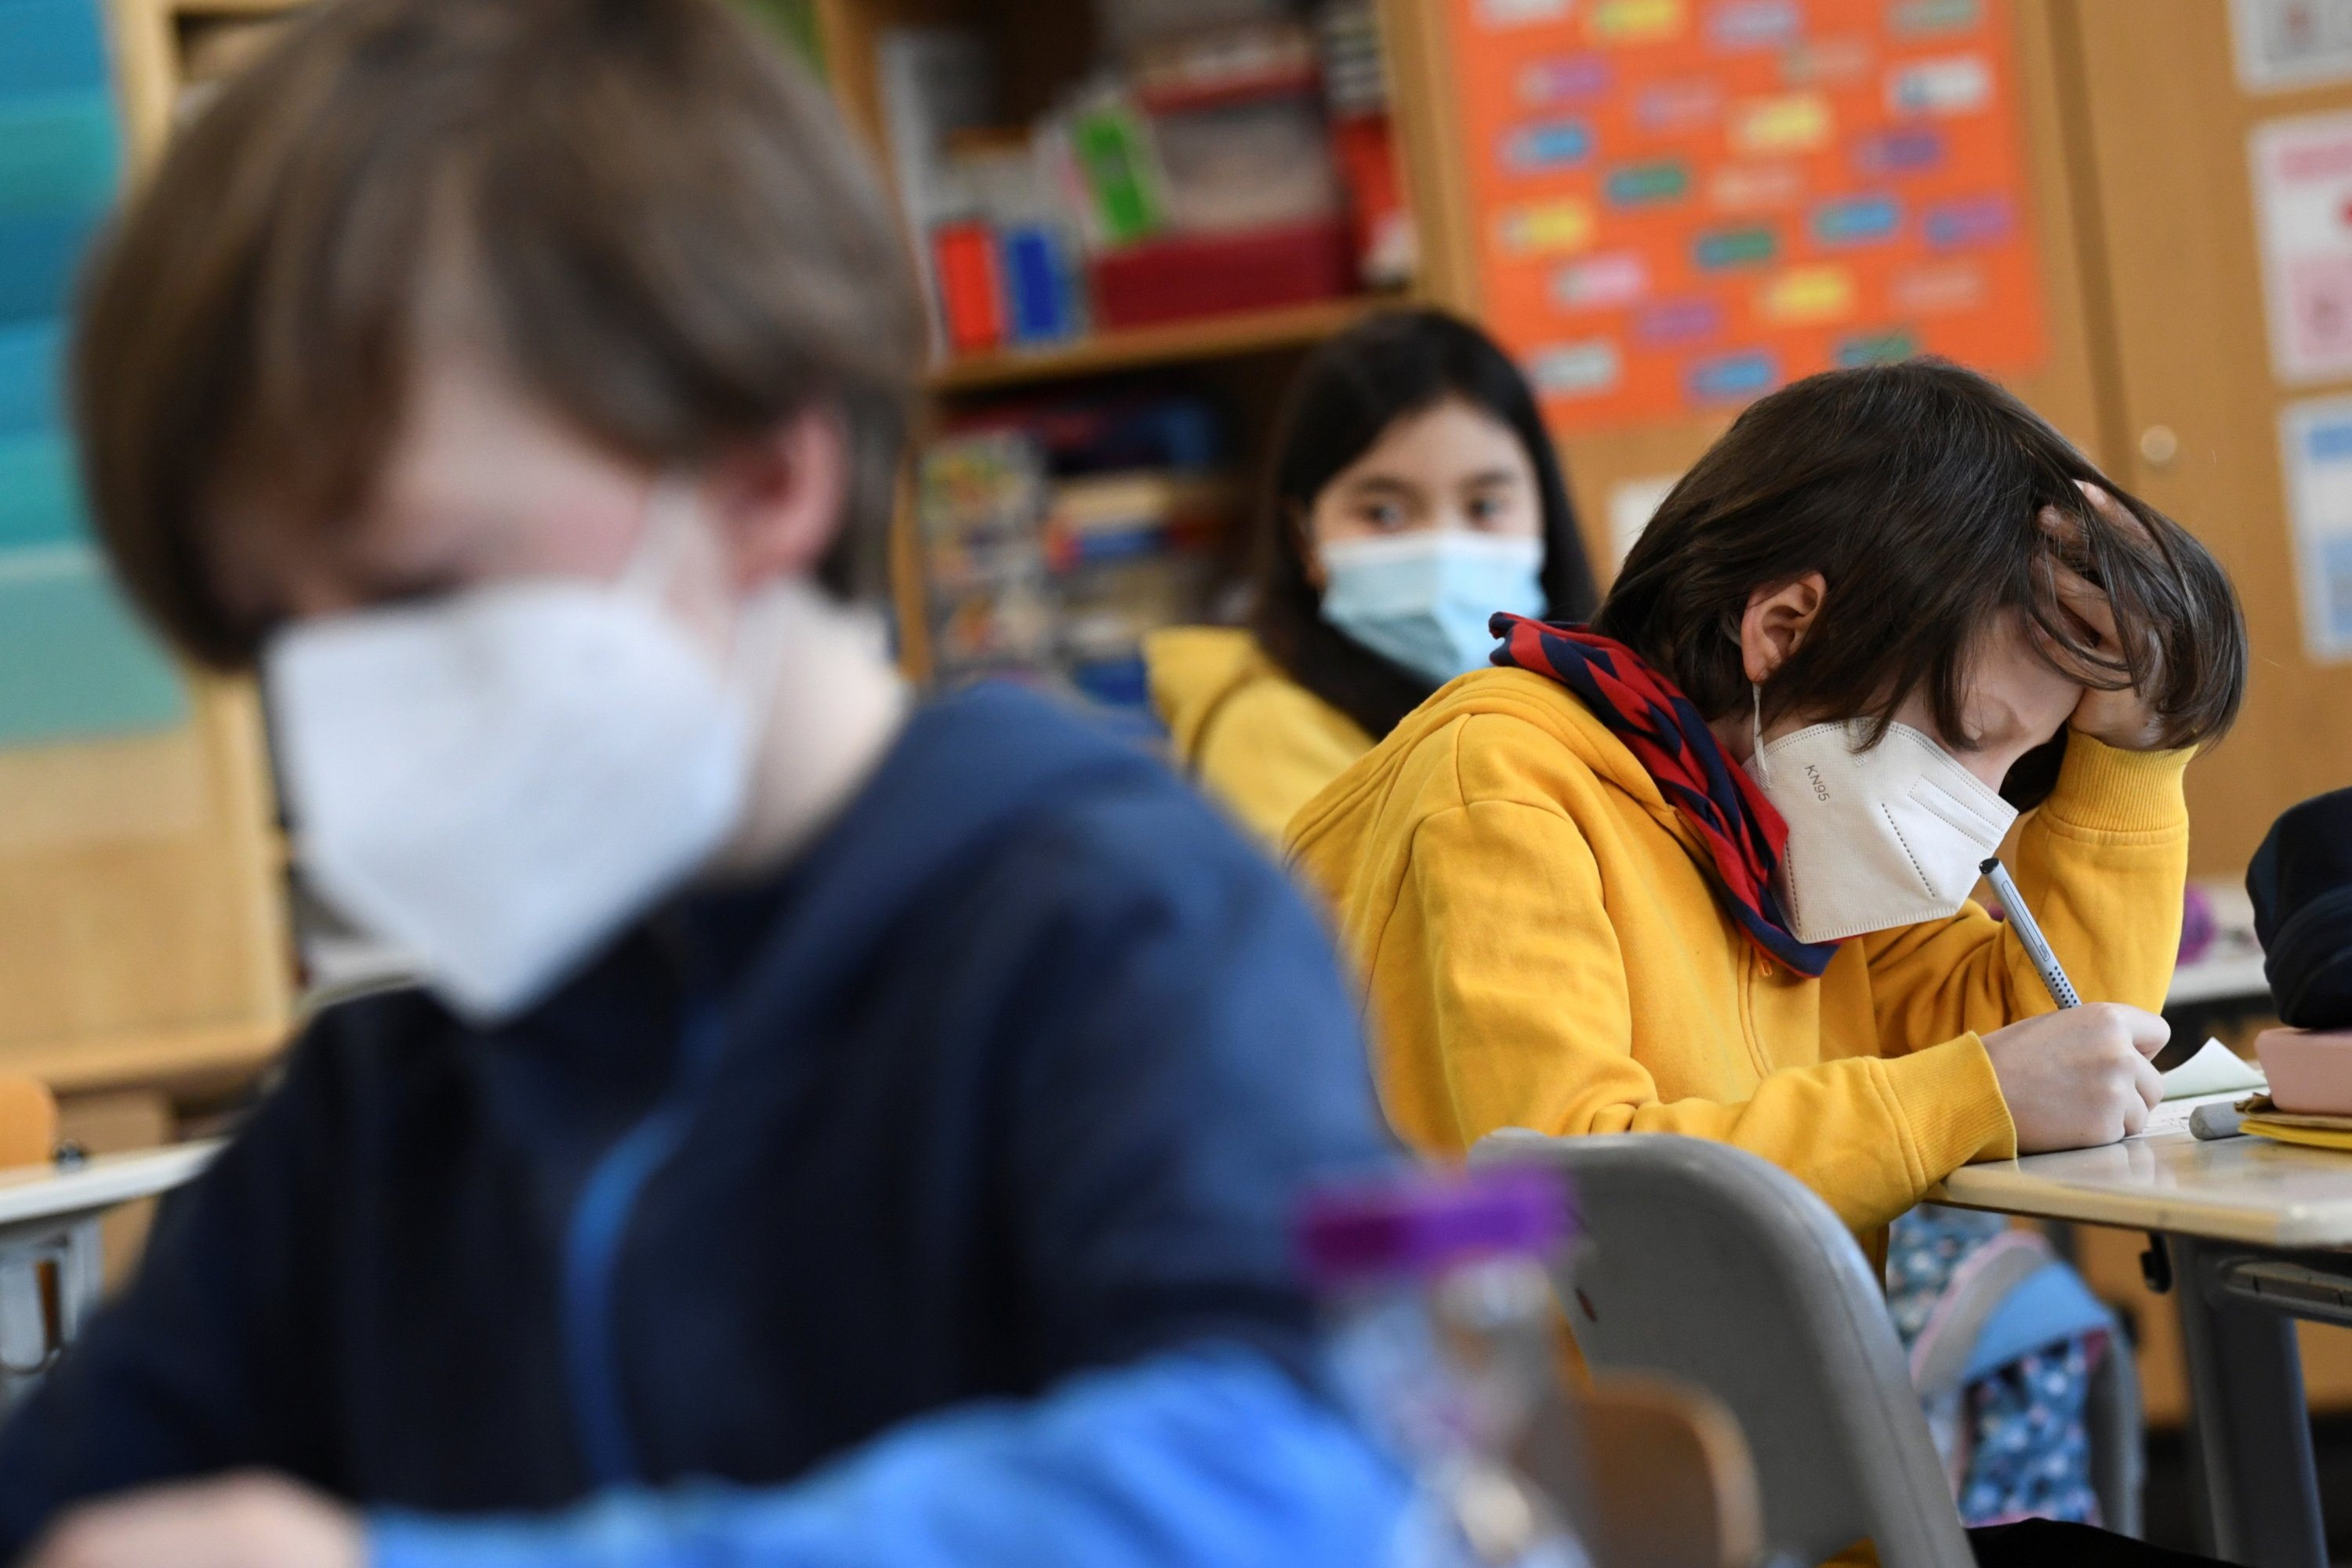 Schoolchildren participate in a lesson at Gustav-Falke elementary school according to the first measures to lift the coronavirus disease (COVID-19) lockdown in Berlin, Germany, Feb. 22, 2021. (Reuters Photo)